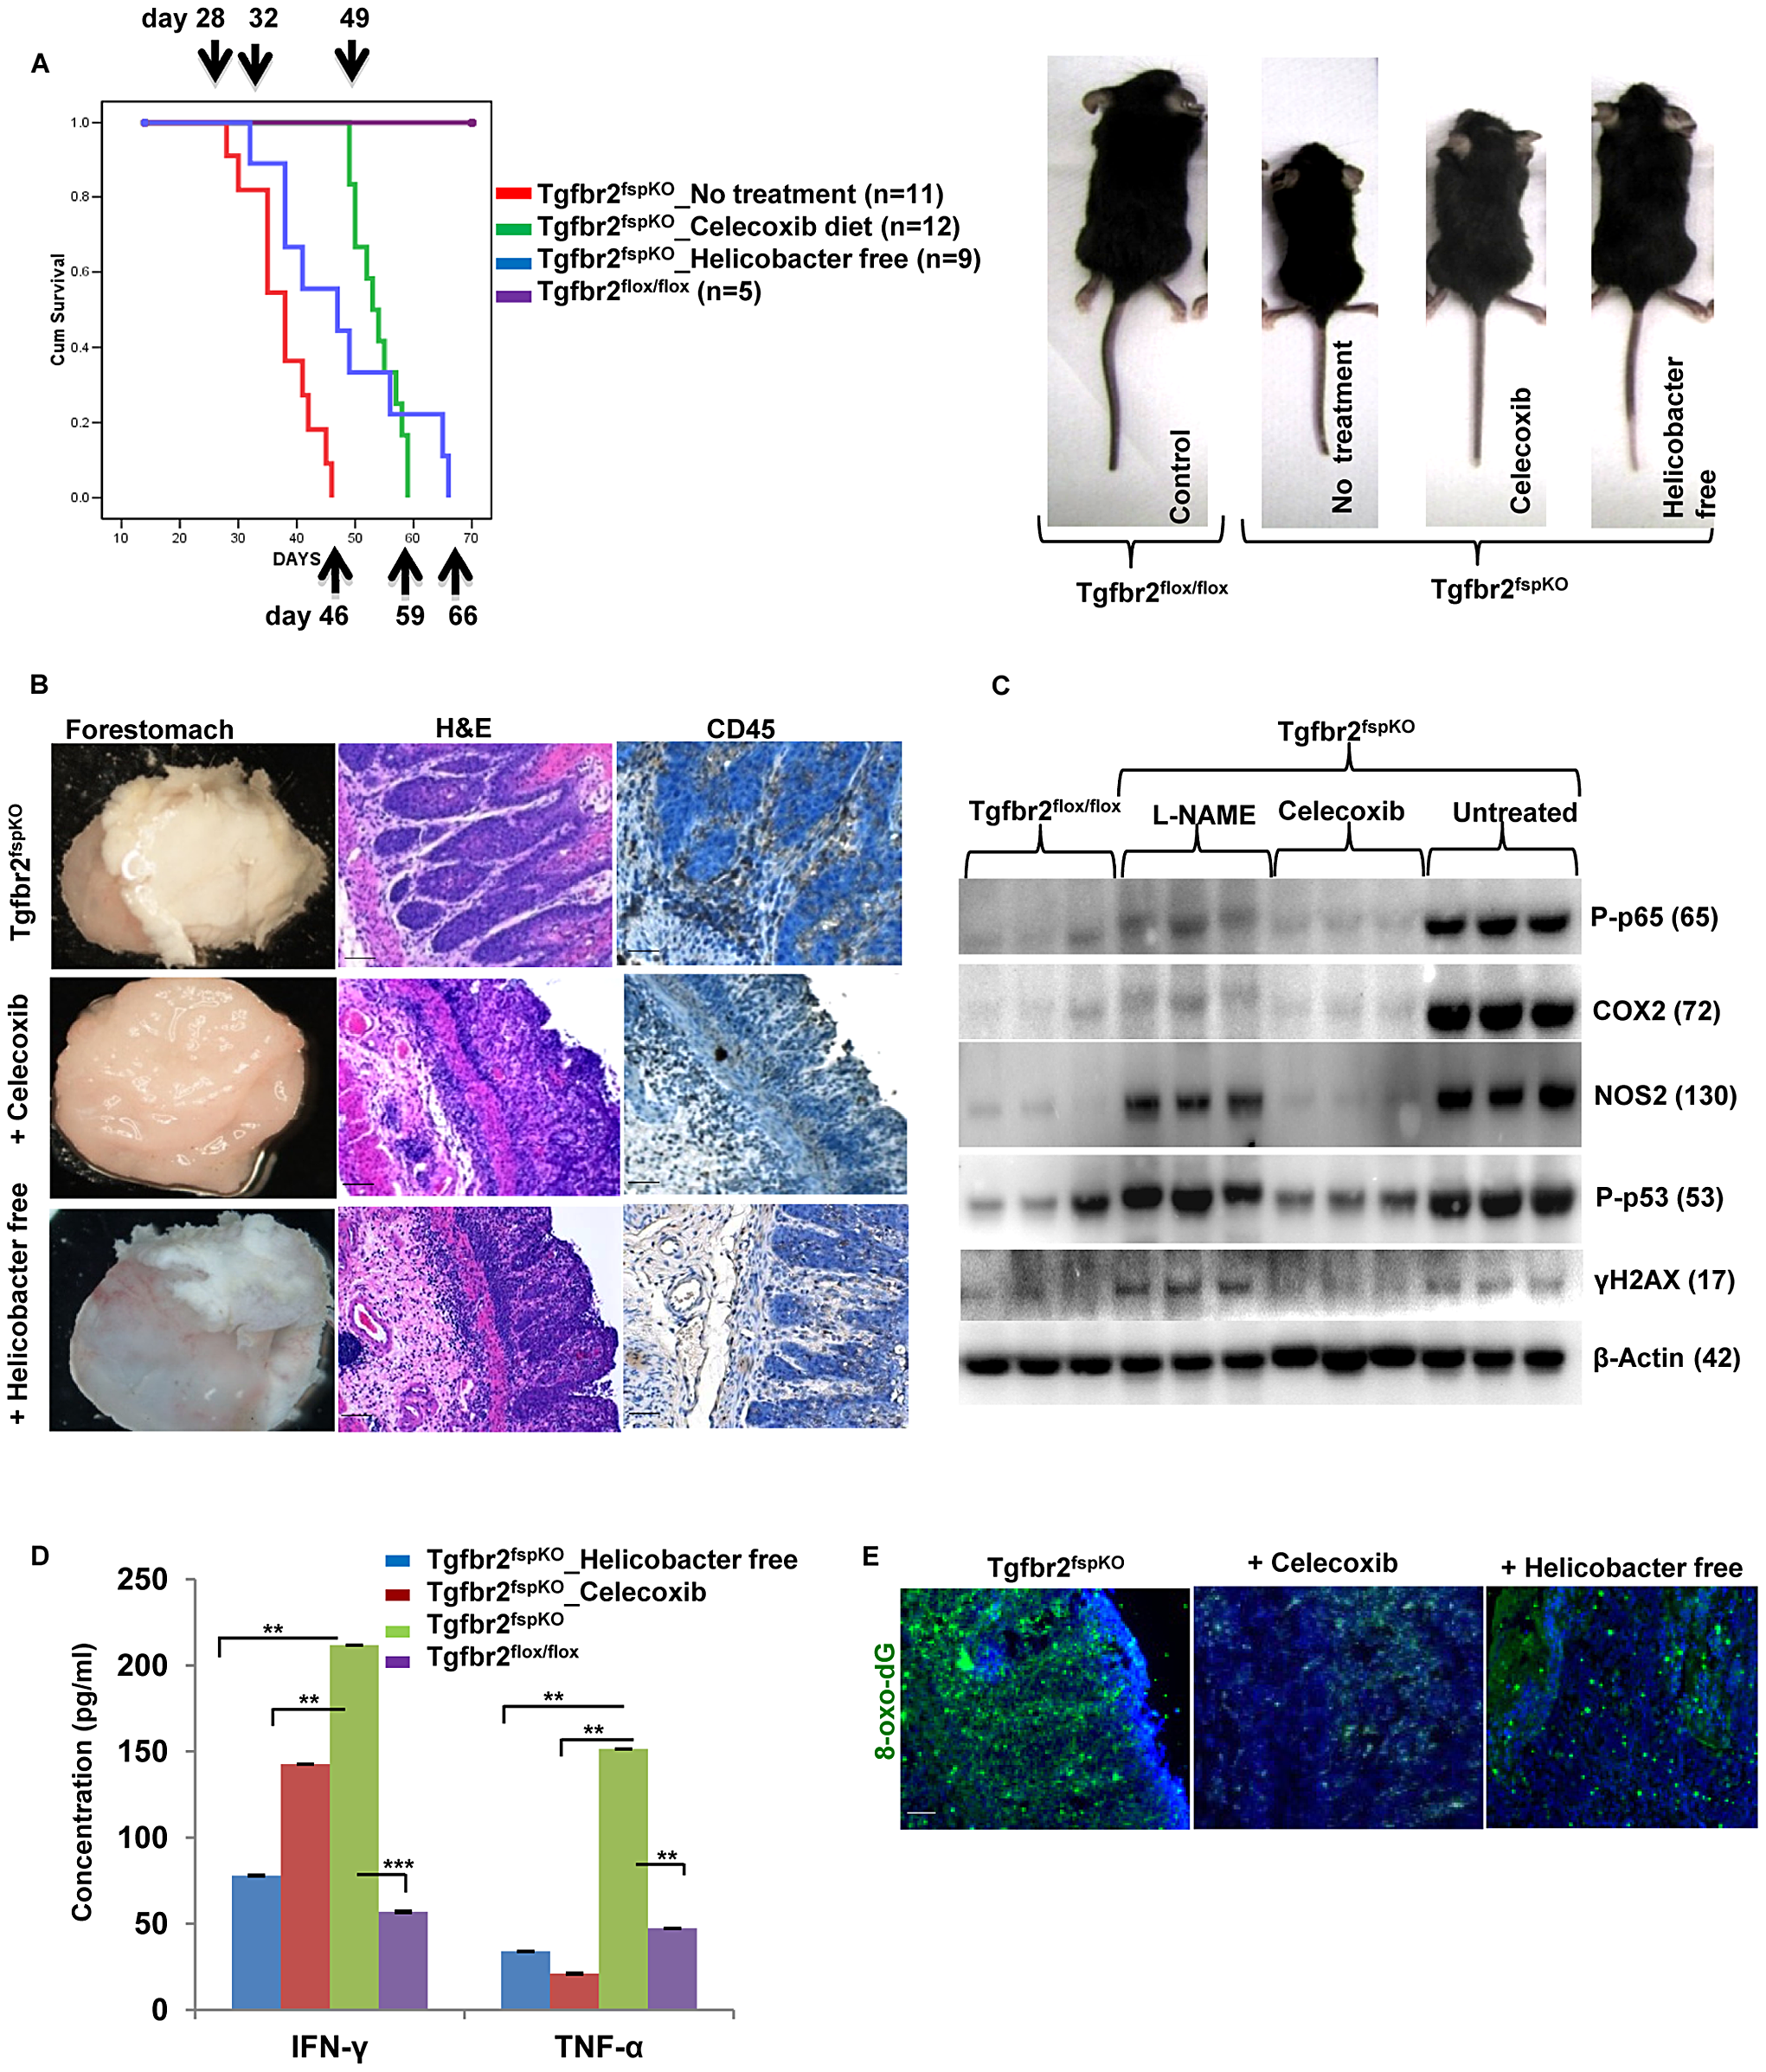 Anti-inflammation delays SCC development and prolongs survival of Tgfbr2<sup>fspKO</sup> mice.